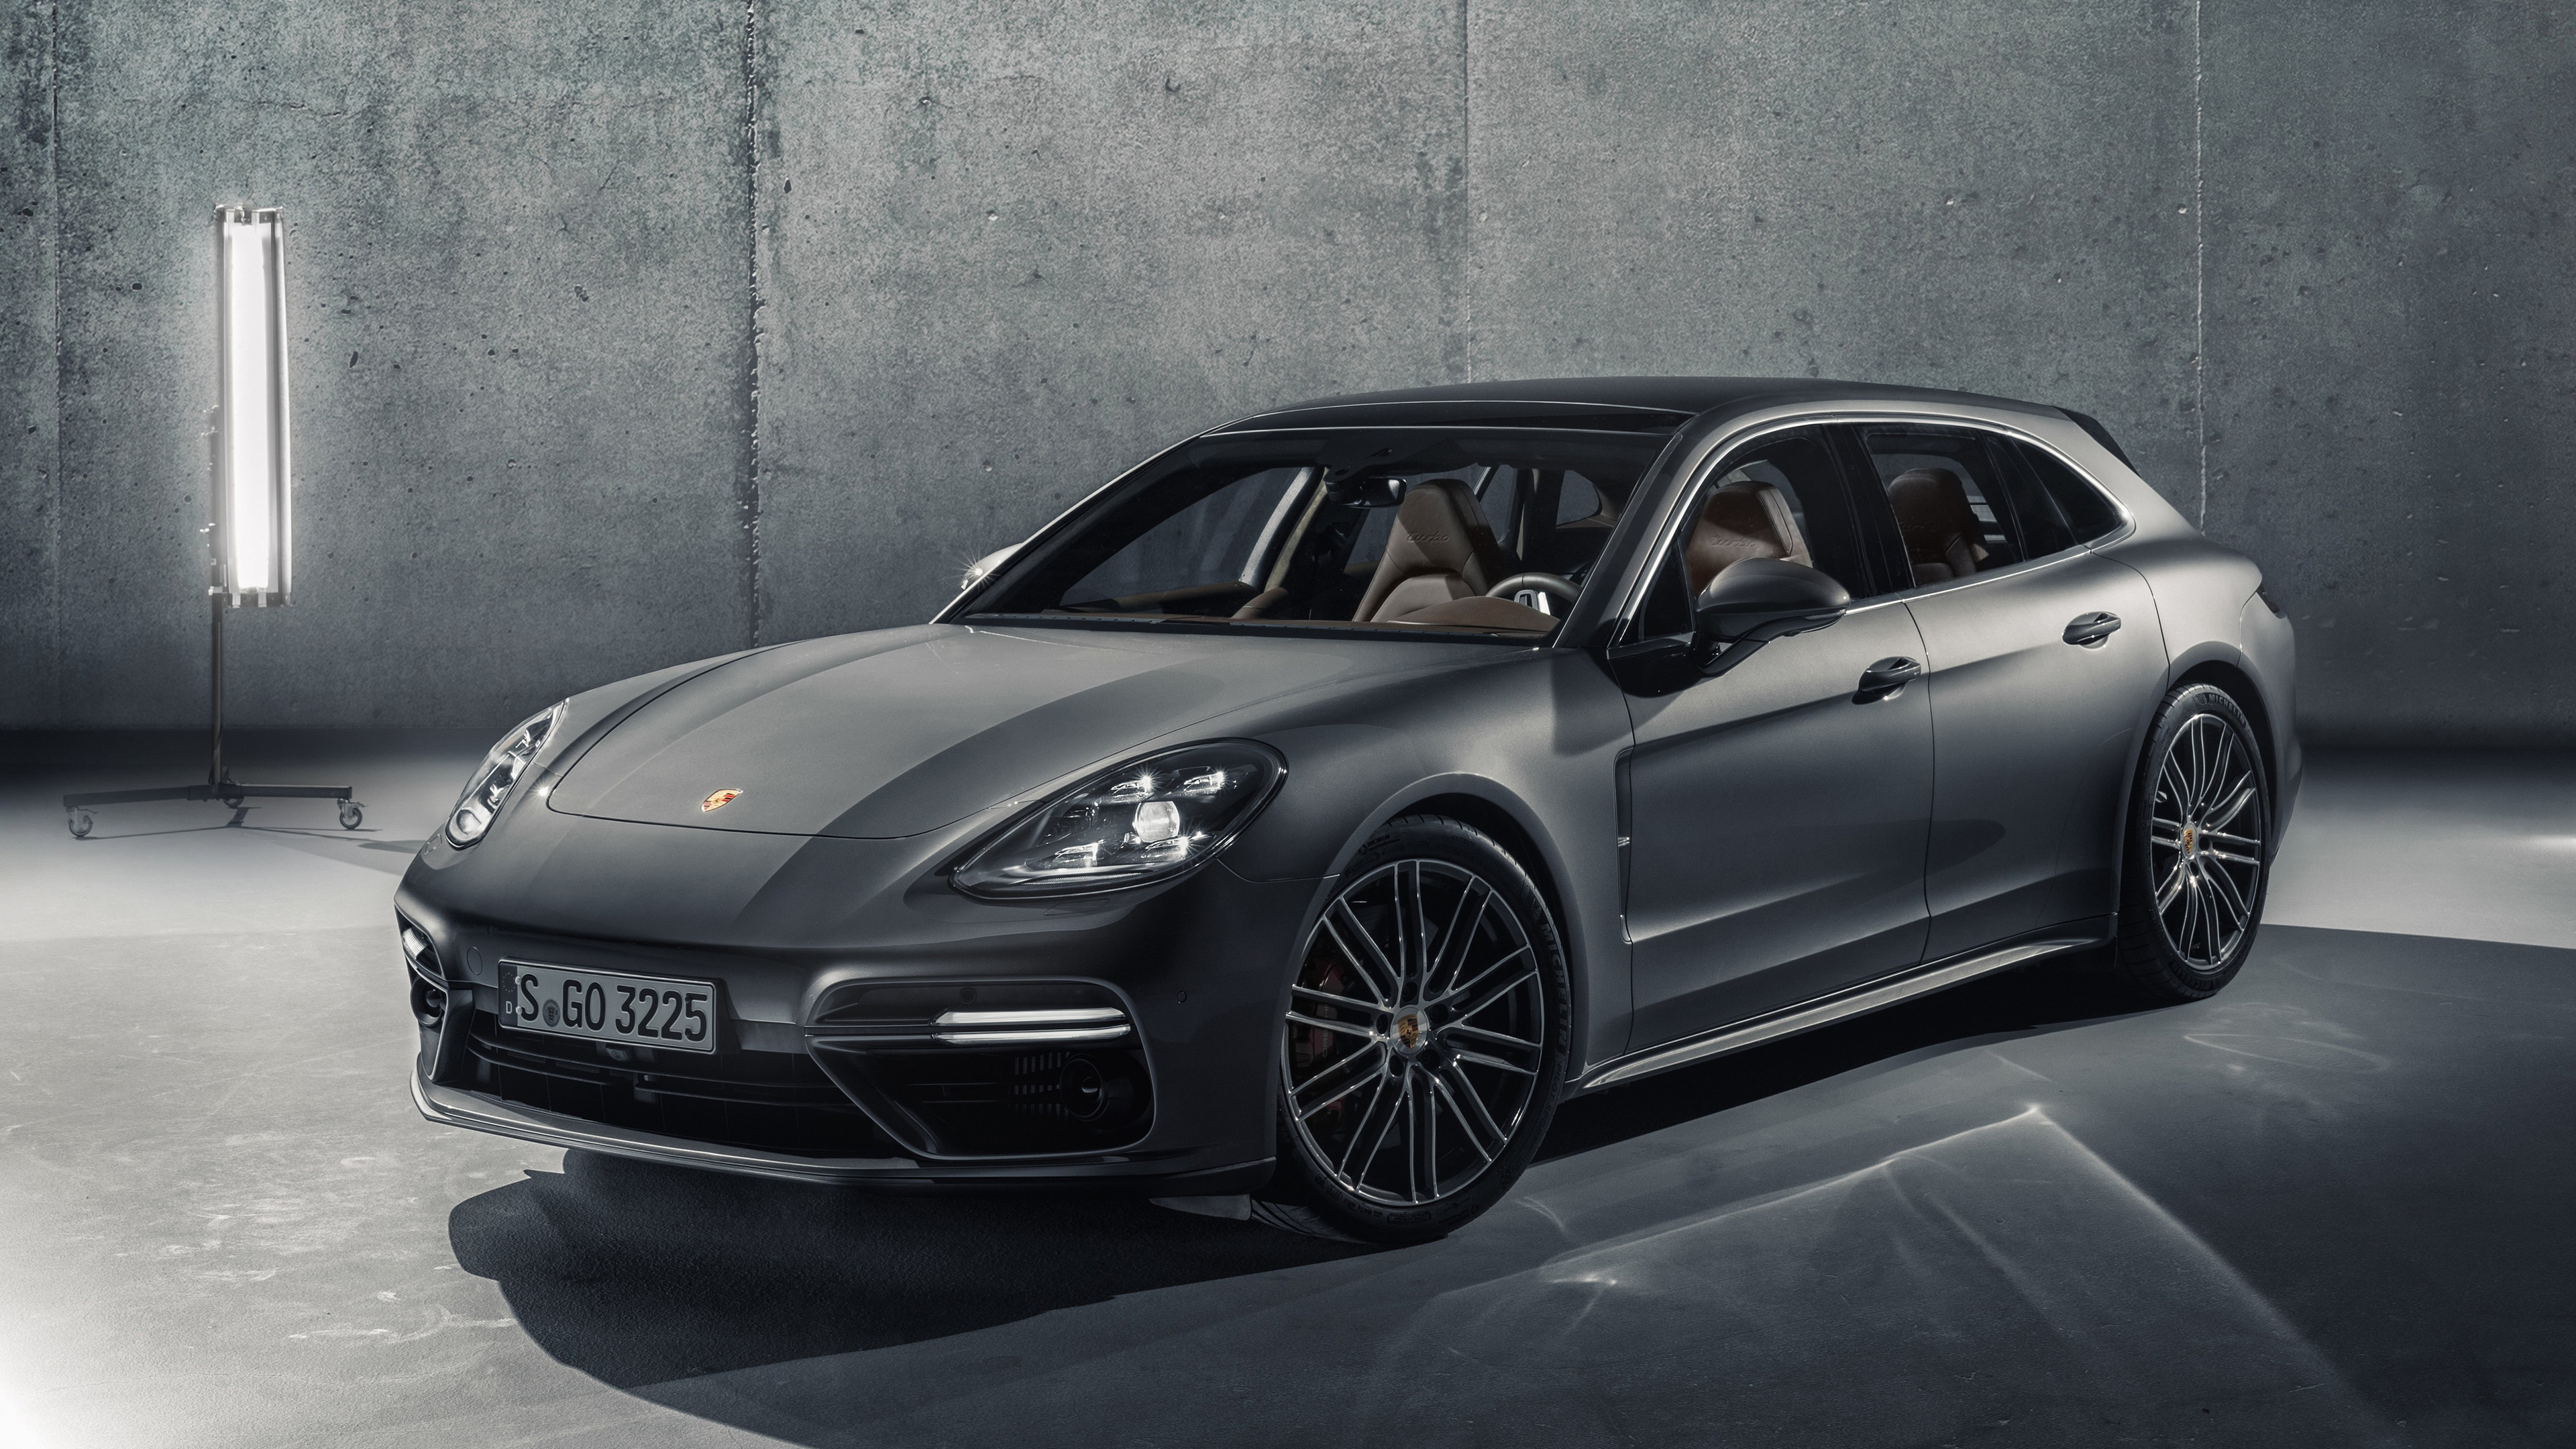 2018 porsche panamera sport turismo 1539104991 - 2018 Porsche Panamera Sport Turismo - porsche wallpapers, porsche panamera wallpapers, hd-wallpapers, cars wallpapers, 5k wallpapers, 4k-wallpapers, 2018 cars wallpapers